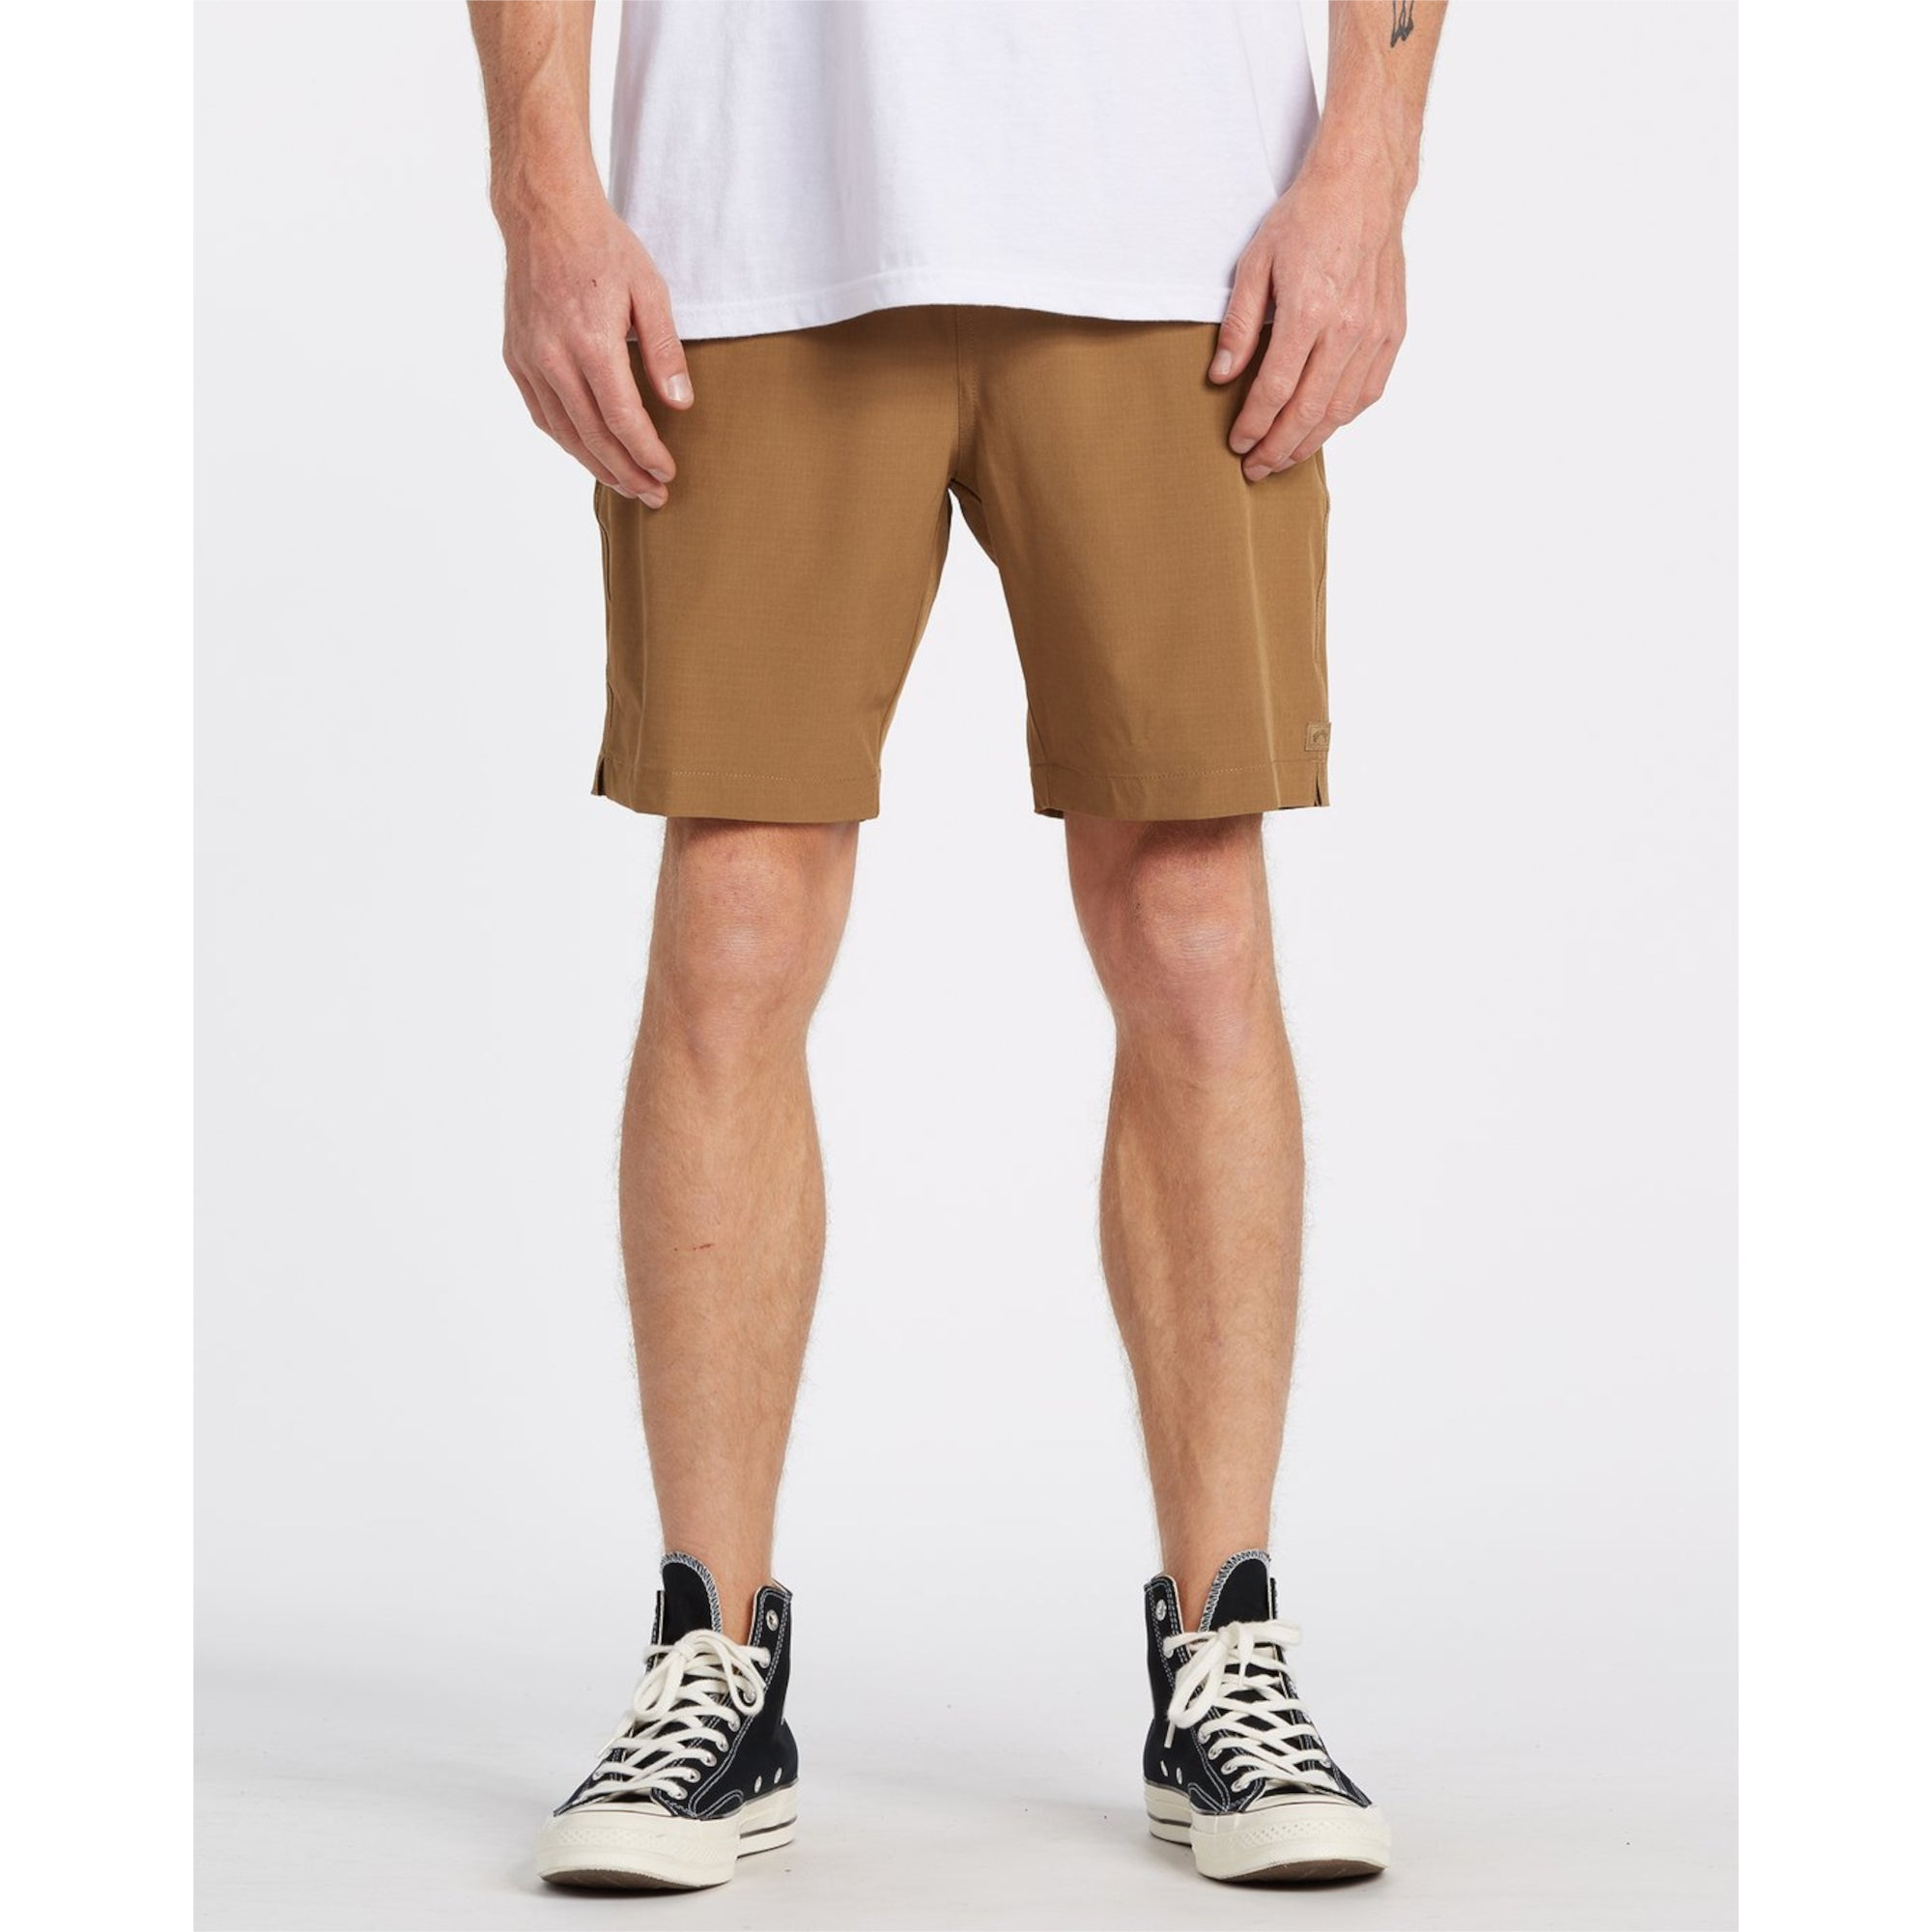 Billabong Transport Elastic Men's Walkshort